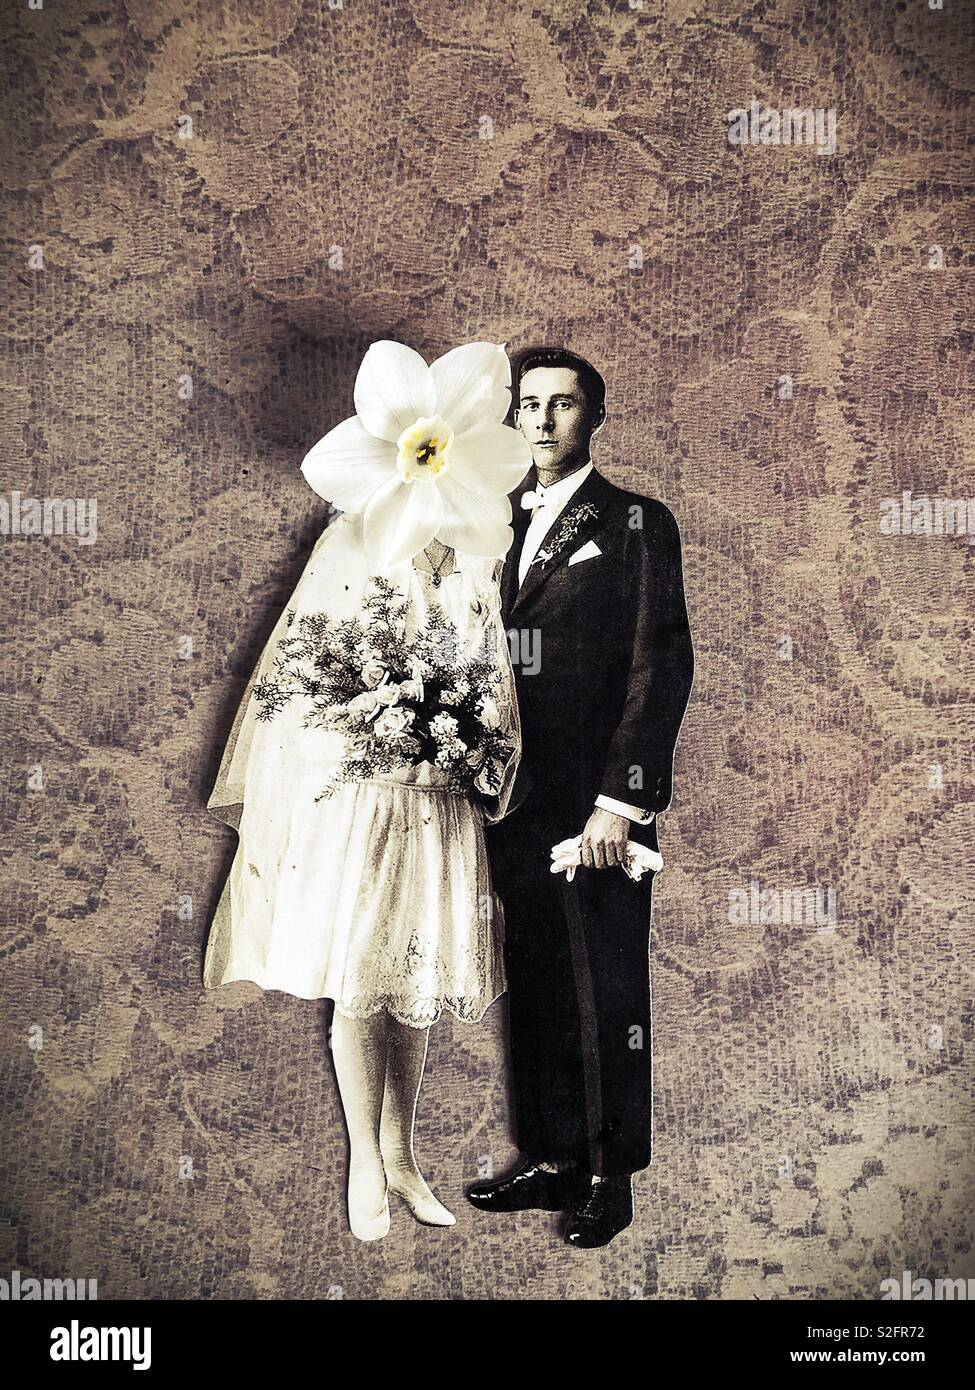 A surreal collage of bride and groom. - Stock Image